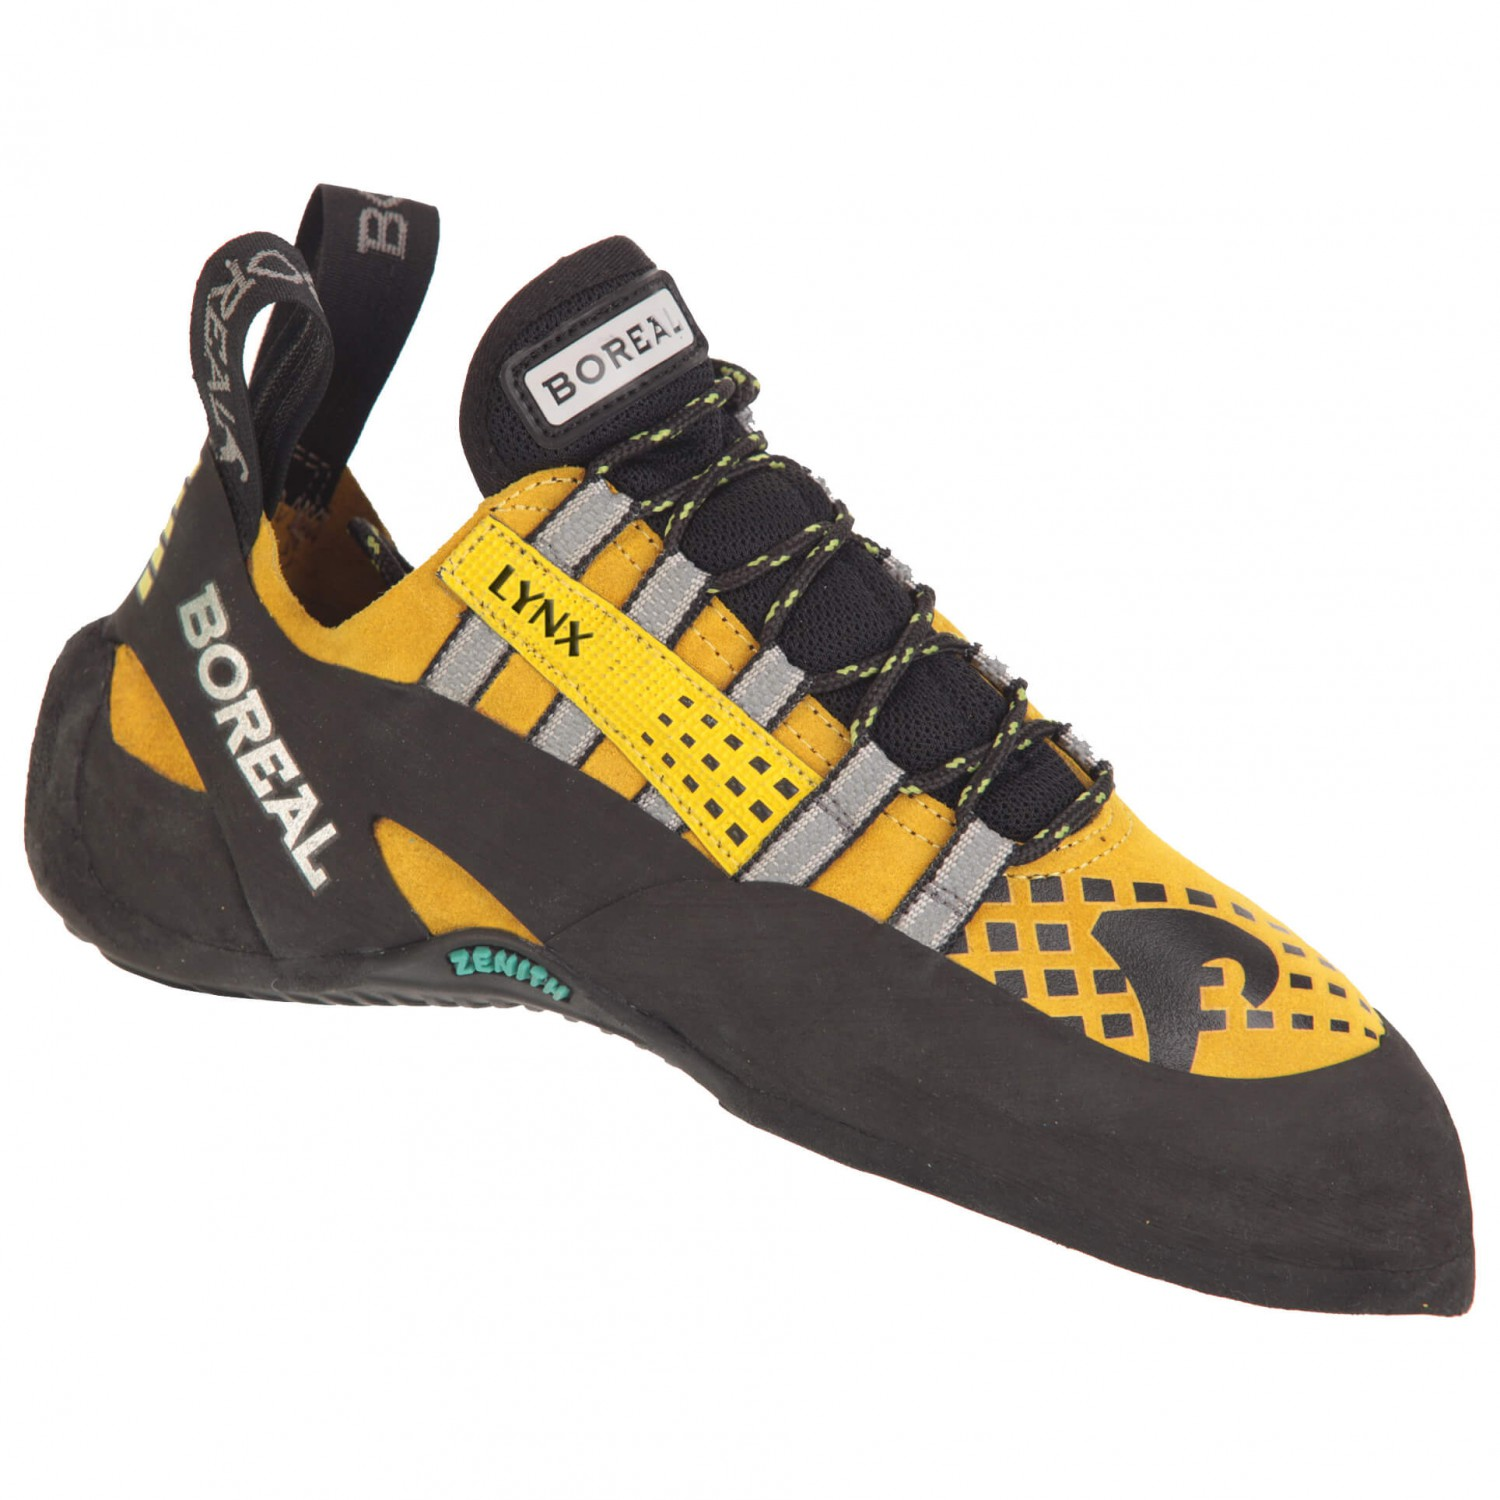 Boreal Shoes Online